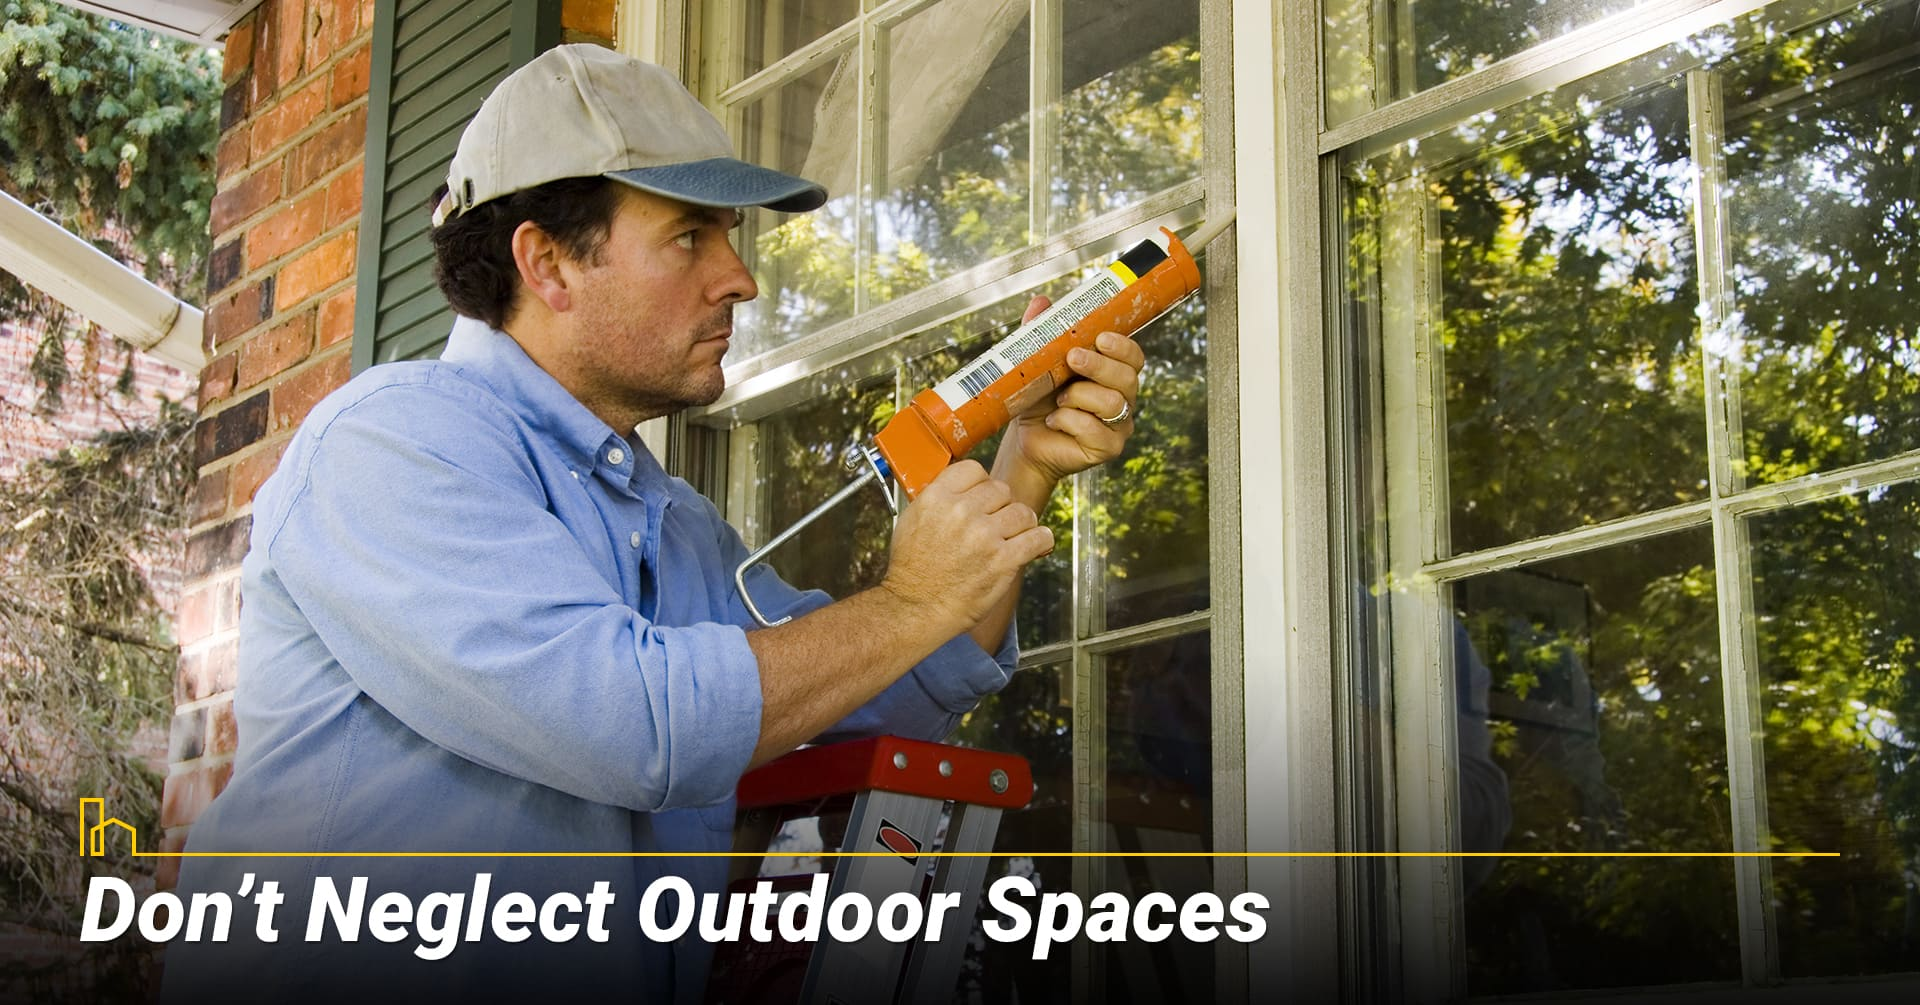 Don't Neglect Outdoor Spaces, maintain the exteriors